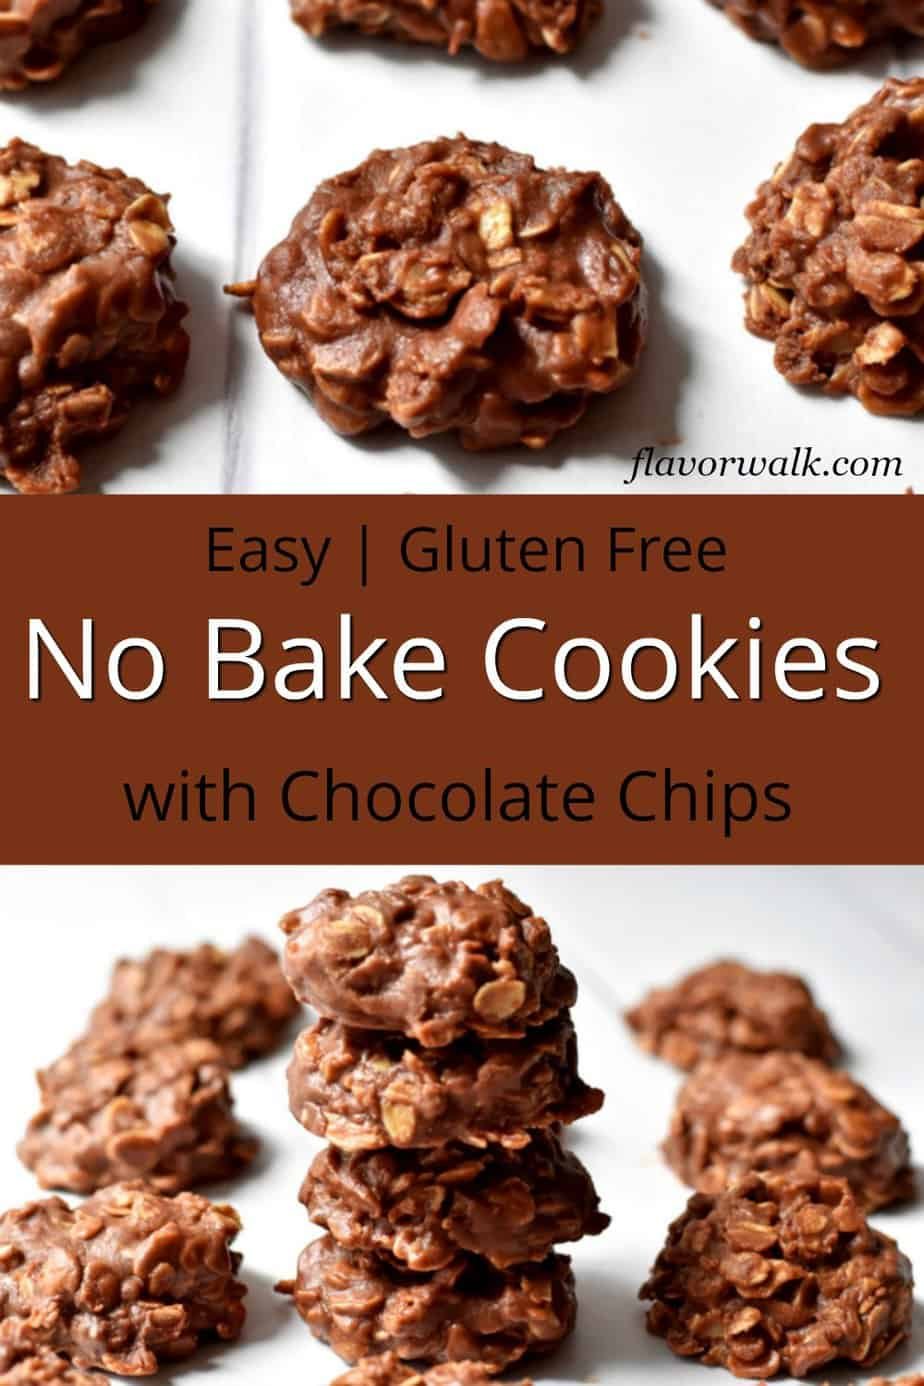 Upper image is no bake cookies on parchment paper, middle image is brown text overlay, bottom image is a stack of no bake cookies with chocolate chips surrounded by additional cookies.